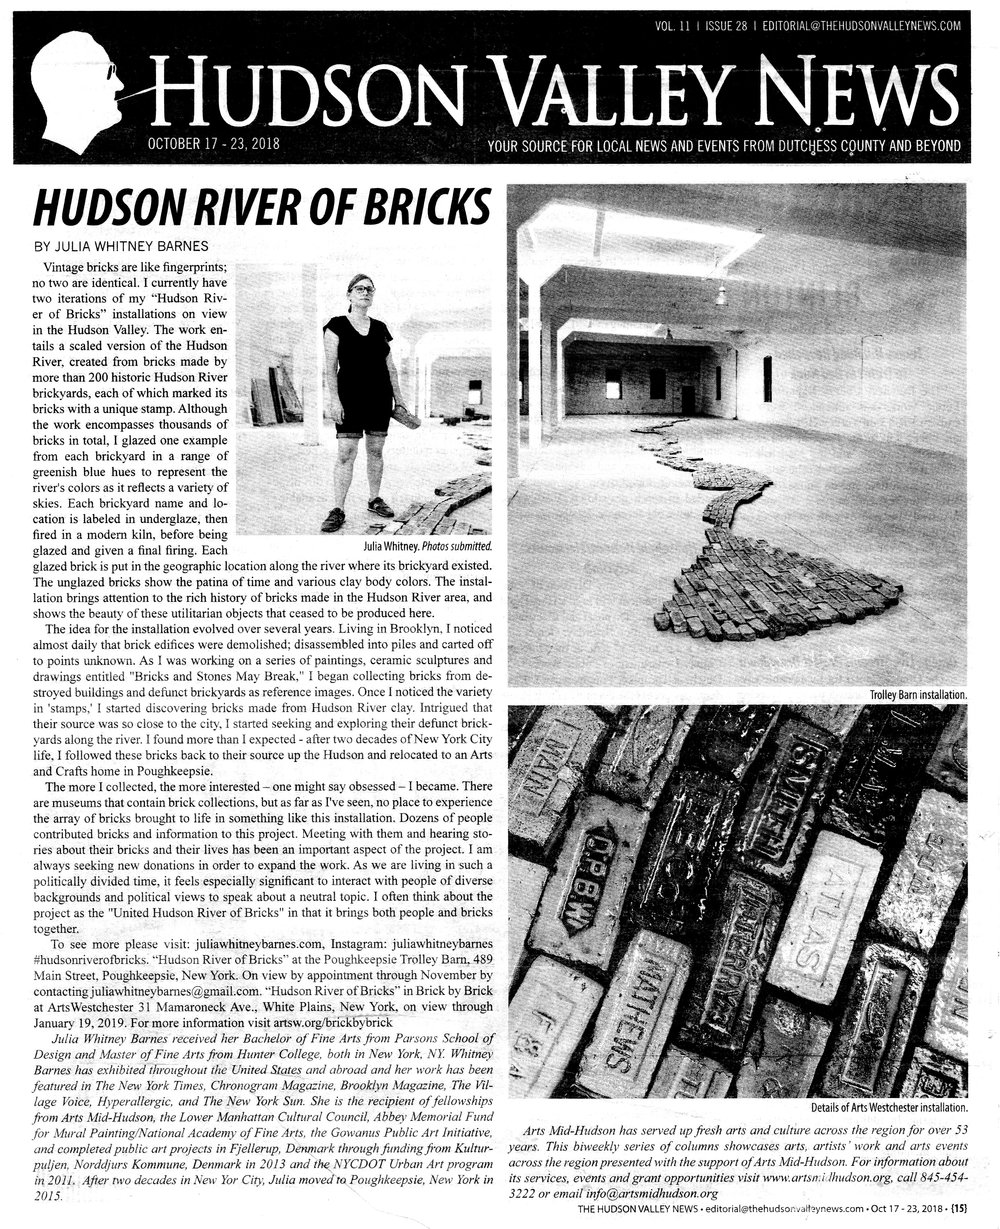 Hudson Valley News